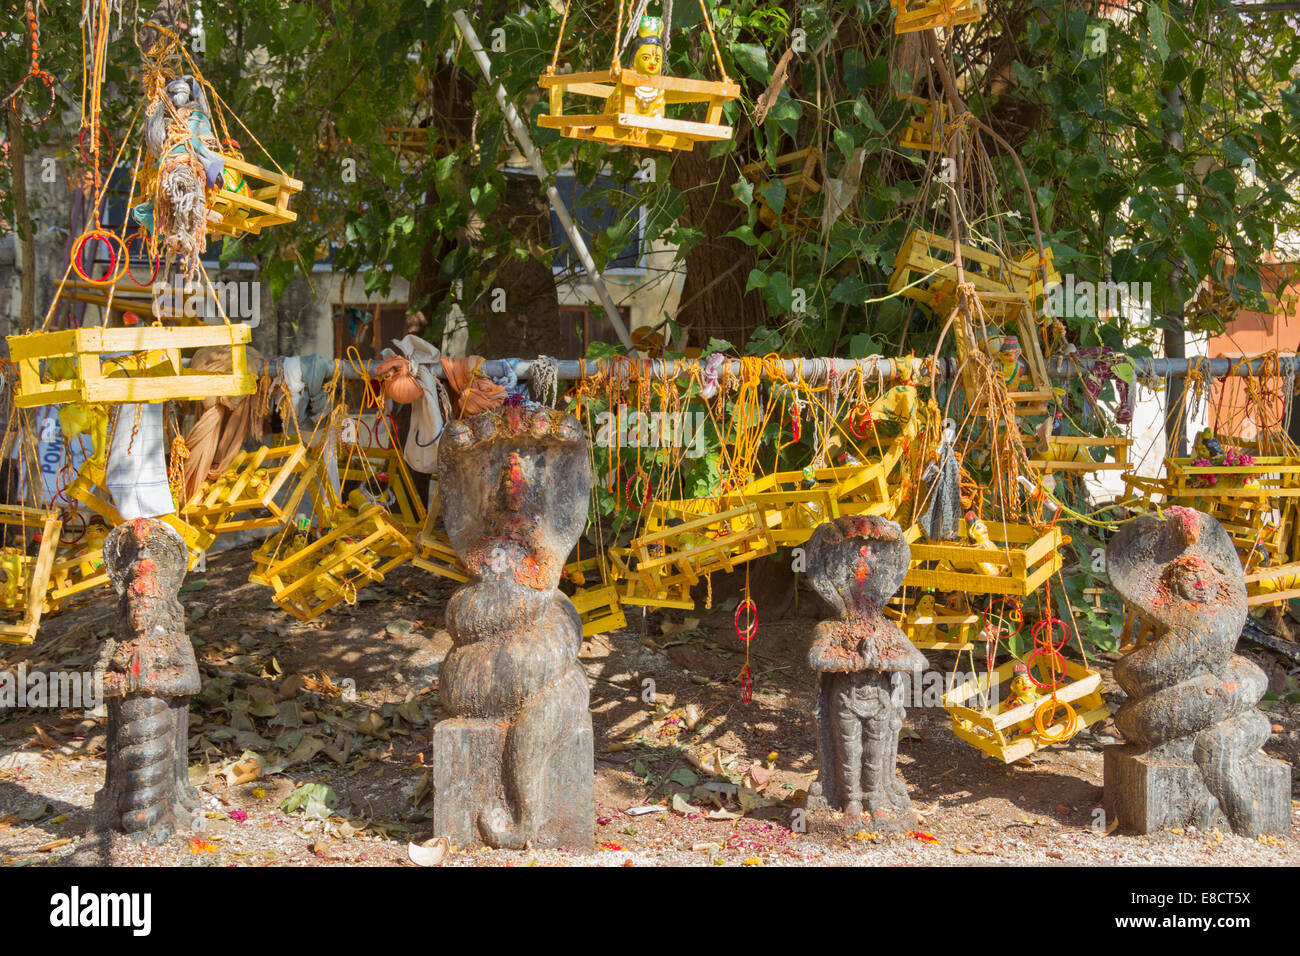 MEENAKSHI AMMAN TEMPLE MADURAI INDIA A SHRINE OF FERTILITY MODEL BABIES CONTAINED IN THE YELLOW CRADLES - Stock Image